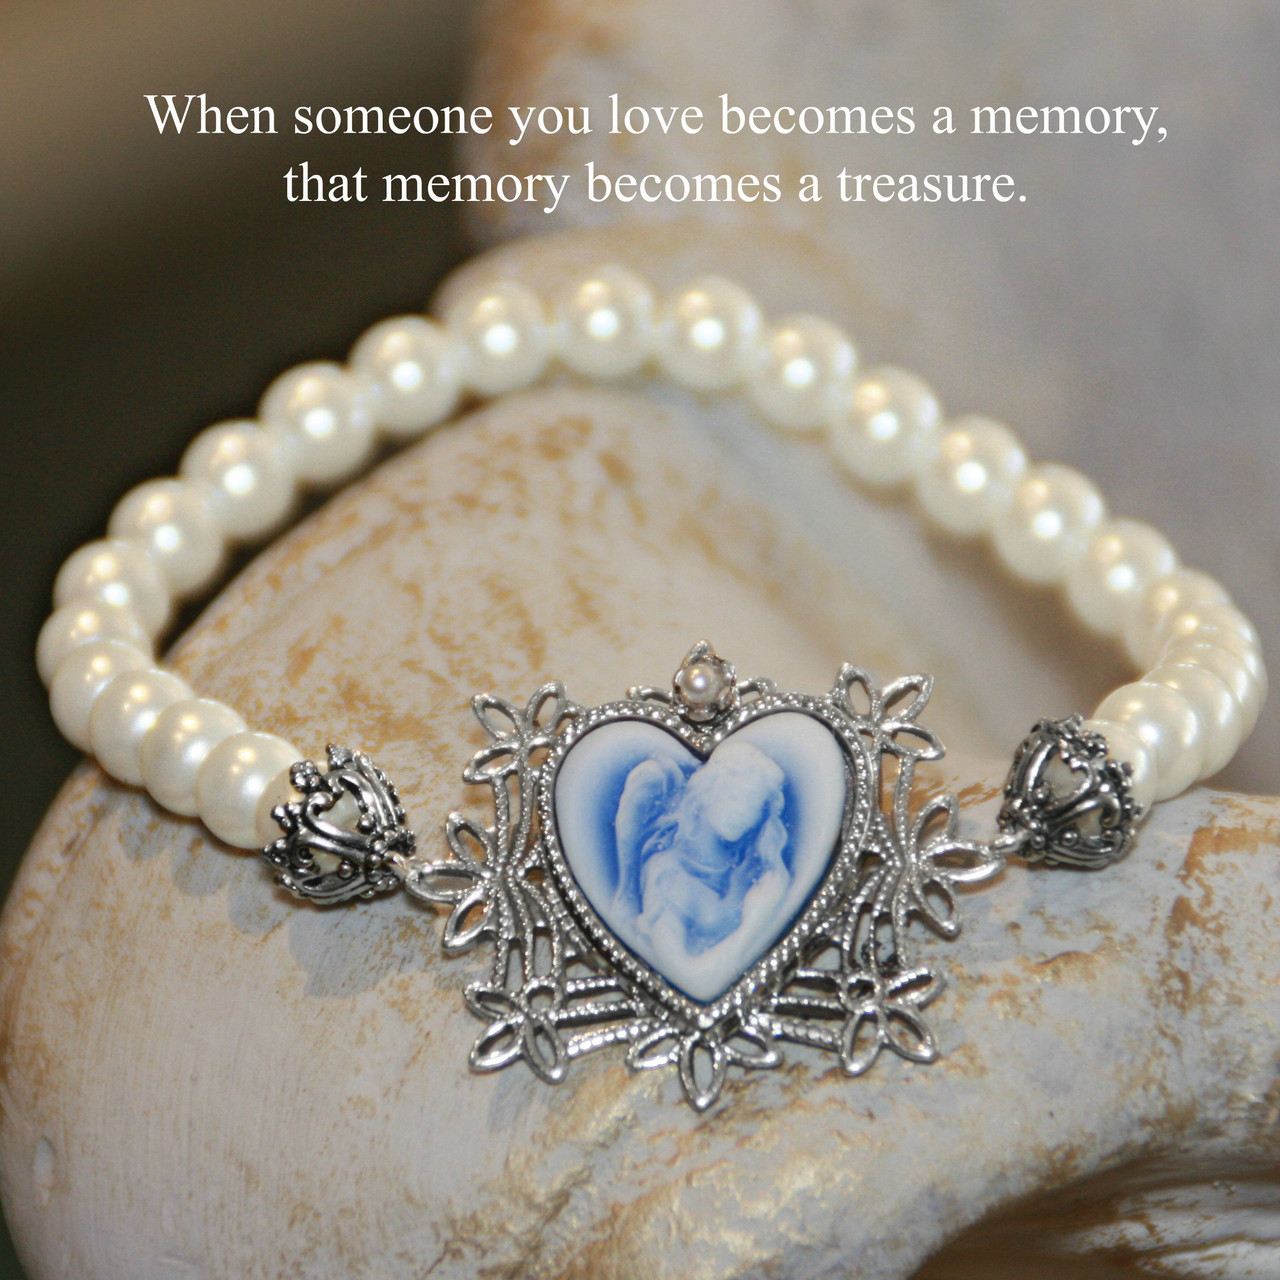 IN-722  Cameo Angel Memory Bracelet...When someone you love